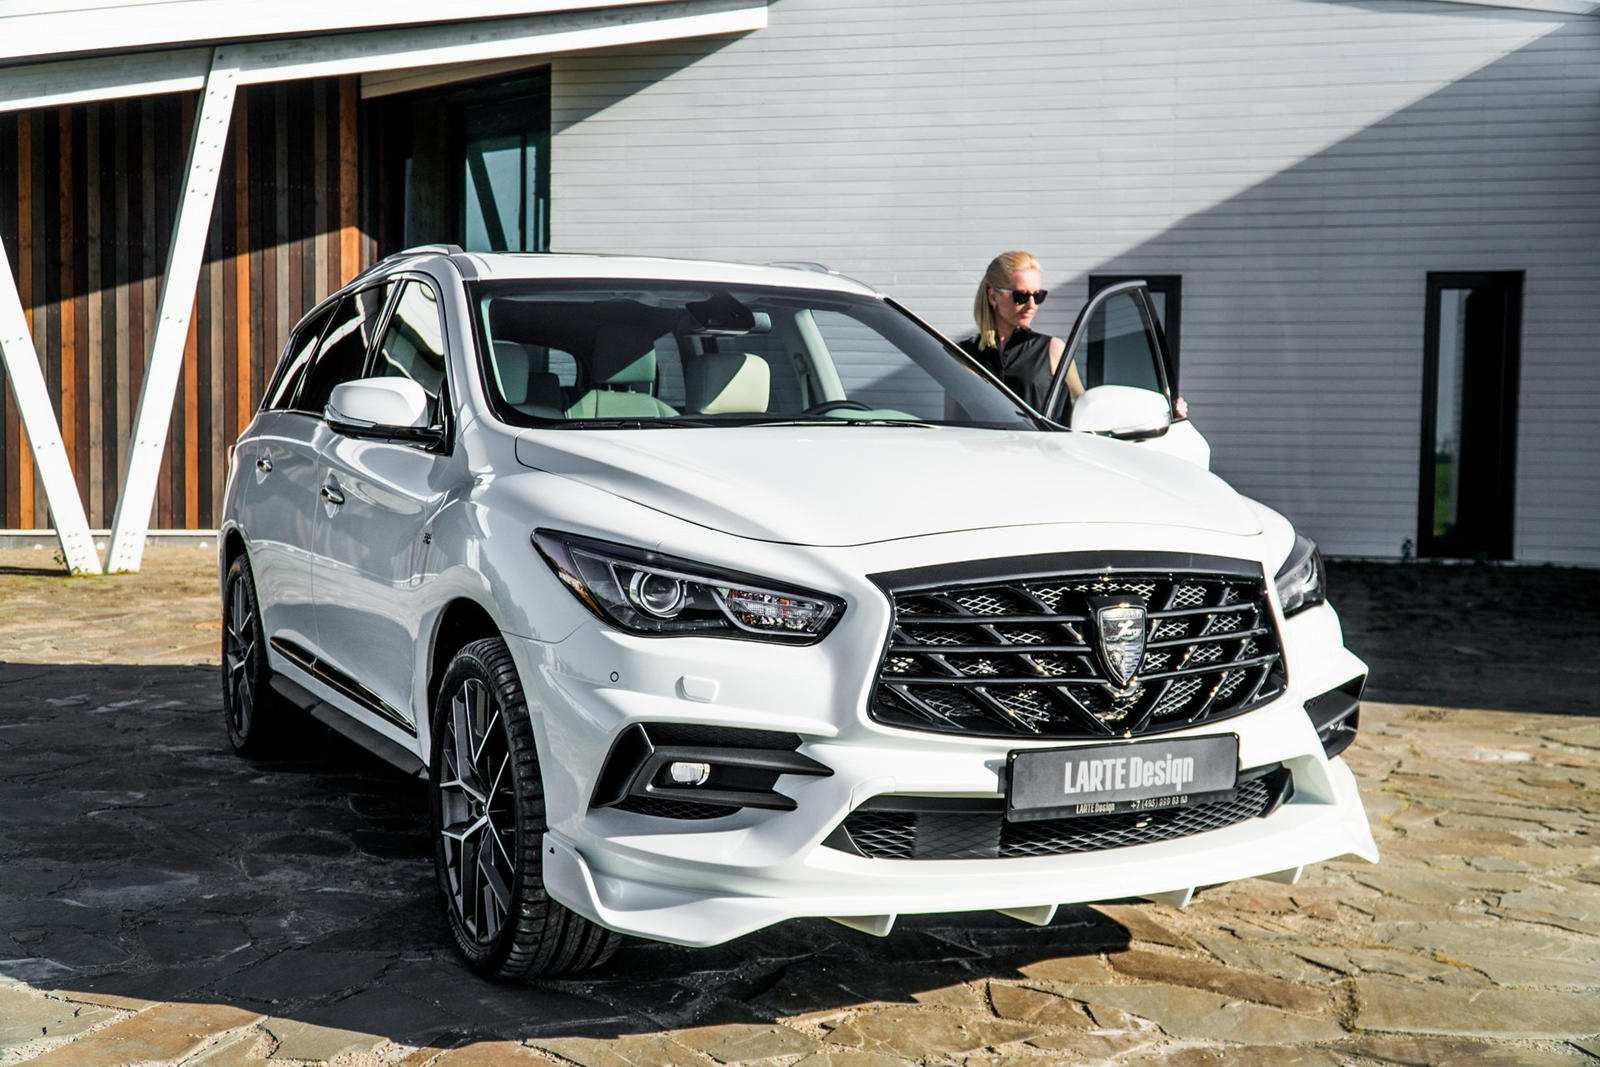 35 All New When Does The 2020 Infiniti Qx60 Come Out Redesign for When Does The 2020 Infiniti Qx60 Come Out